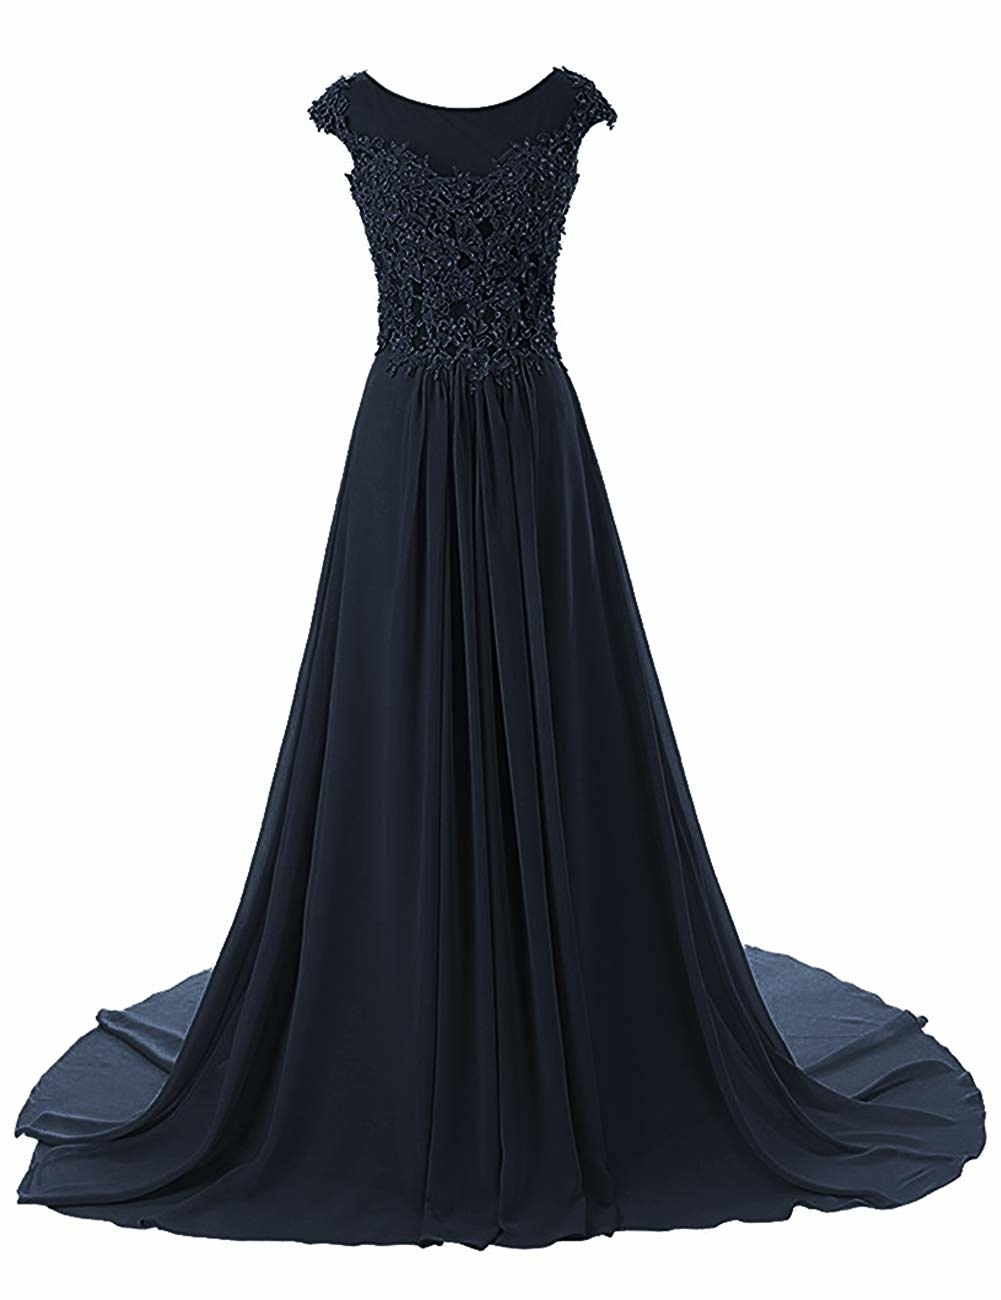 Elegant Women Cap Sleeve Prom Dresses 2020 Cheap Beading Lace Appliques Chiffon Sheer Neckline Evening Party Gowns